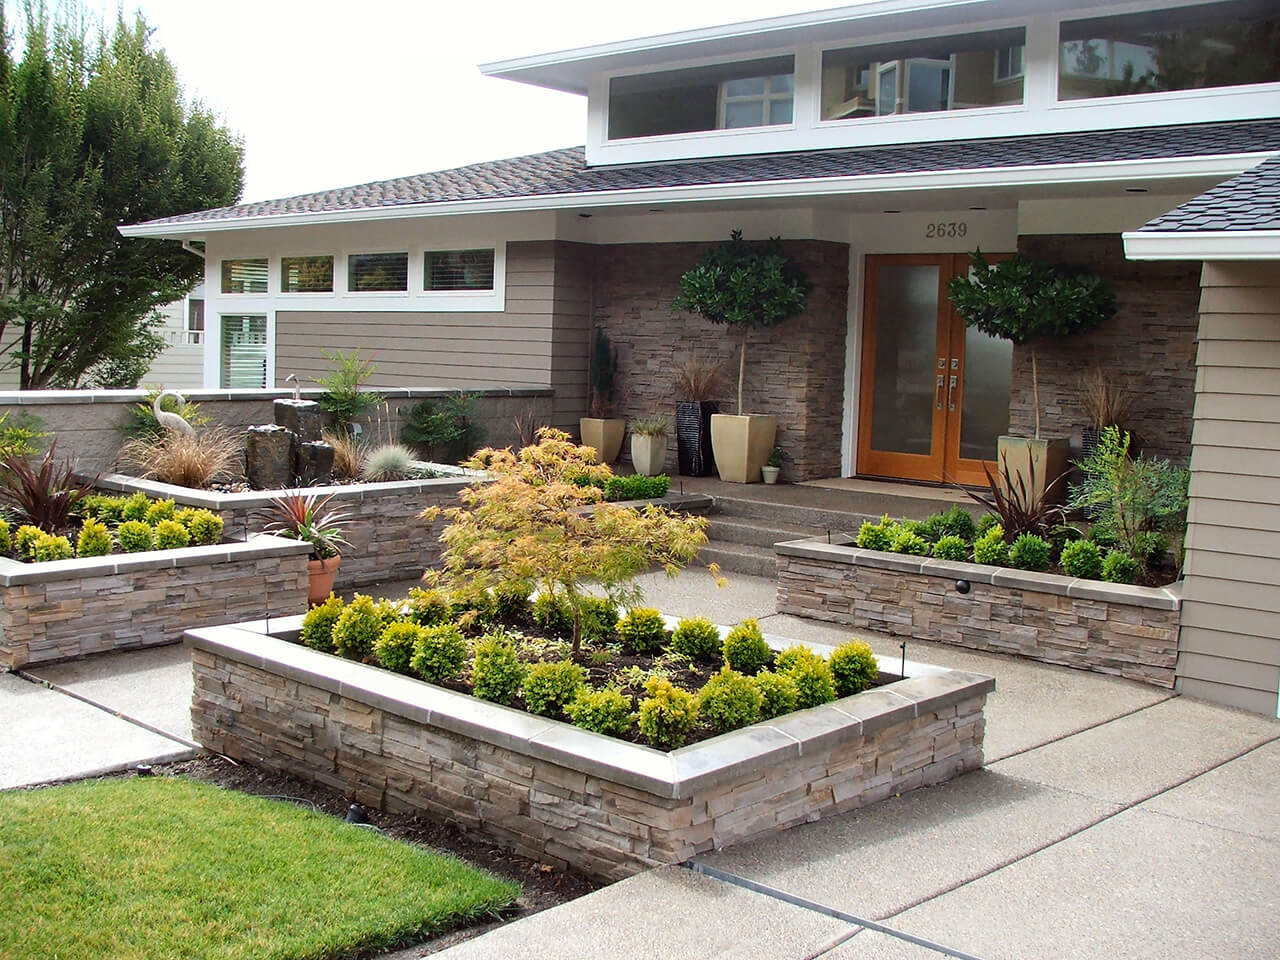 50 best front yard landscaping ideas and garden designs for Great landscaping ideas backyard